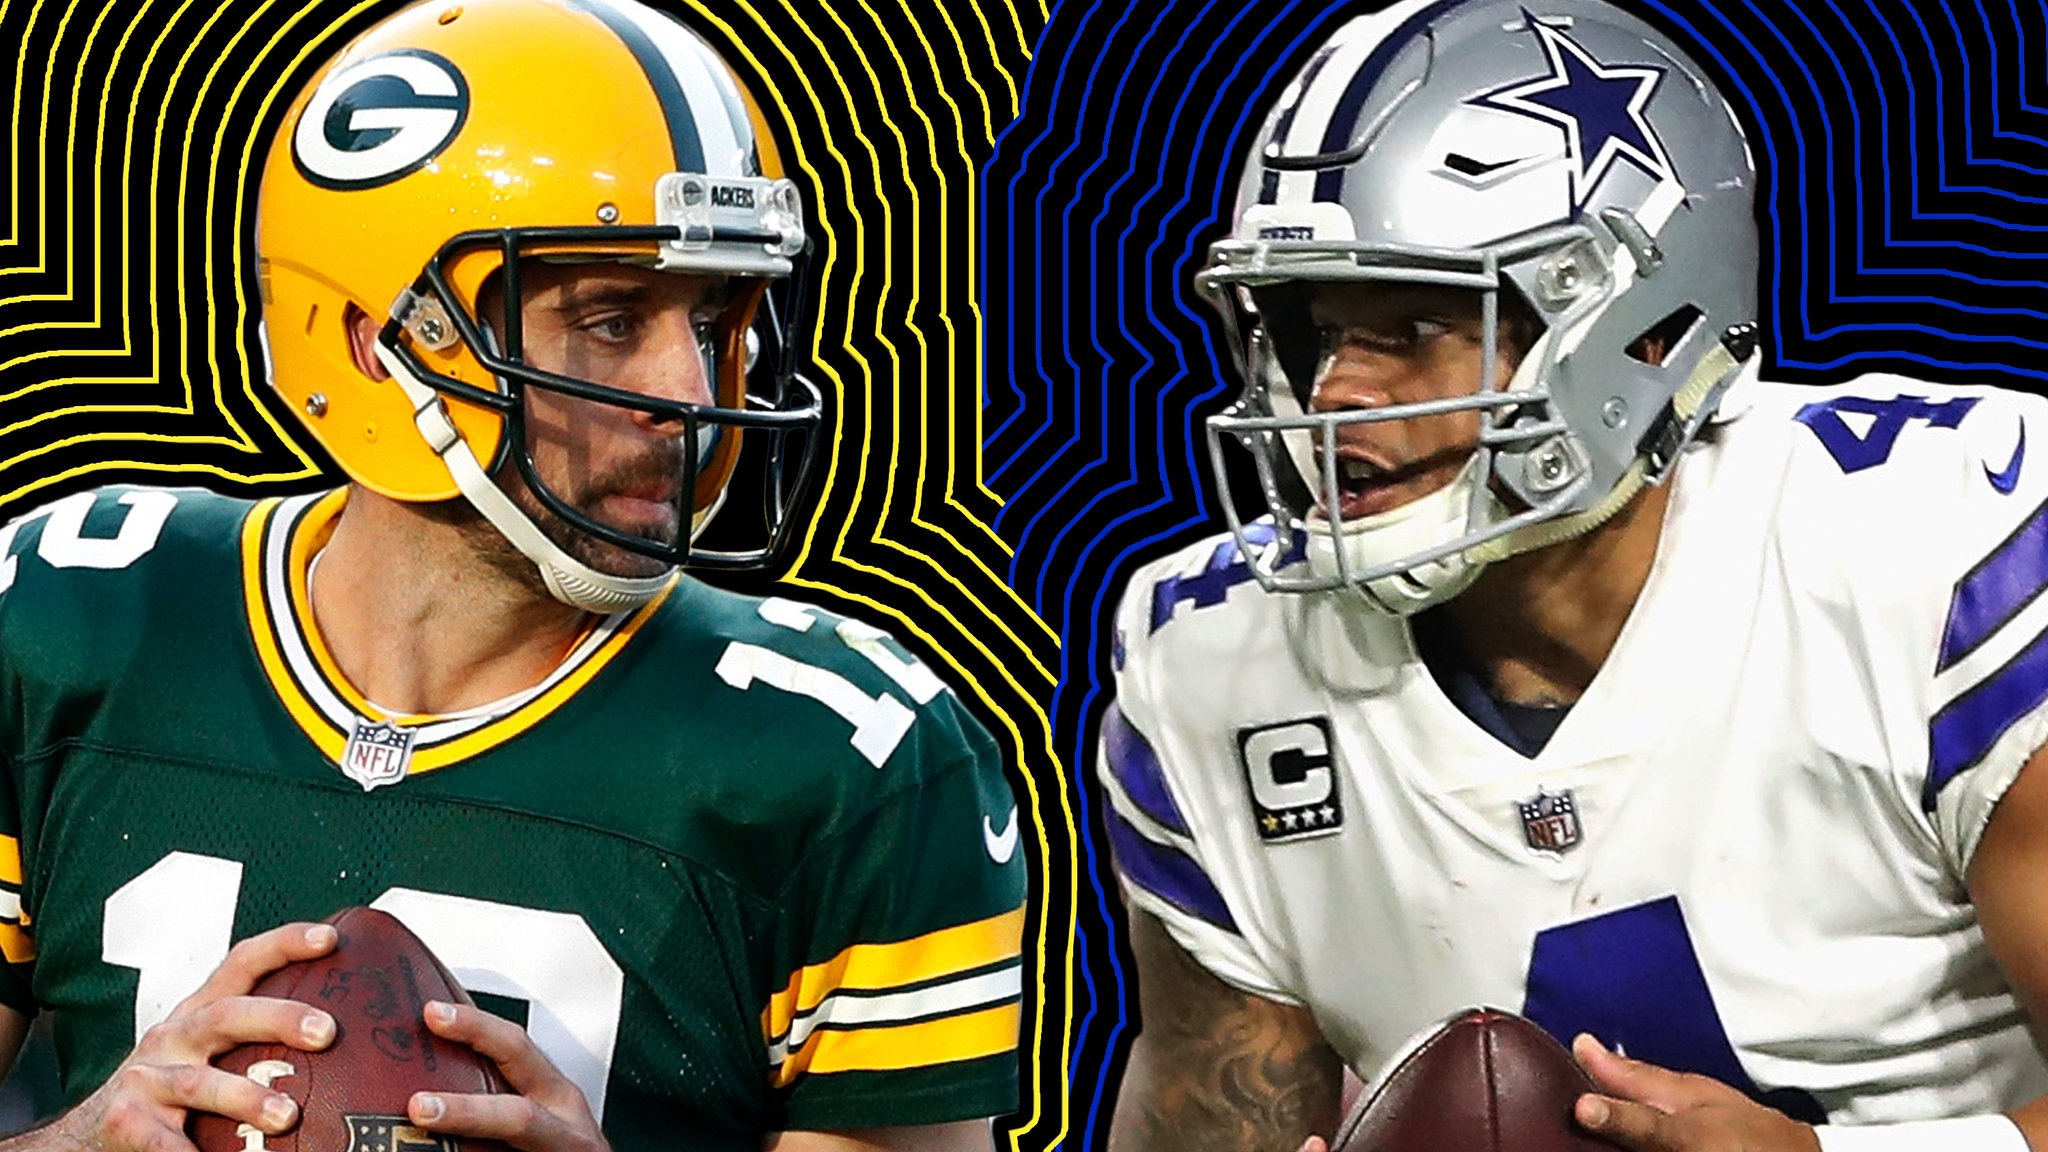 One month down. Who can separate themselves from the pack? Week 5 NFL picks ��  https://t.co/9mlZbqFI5a https://t.co/ATPMuZ94r5